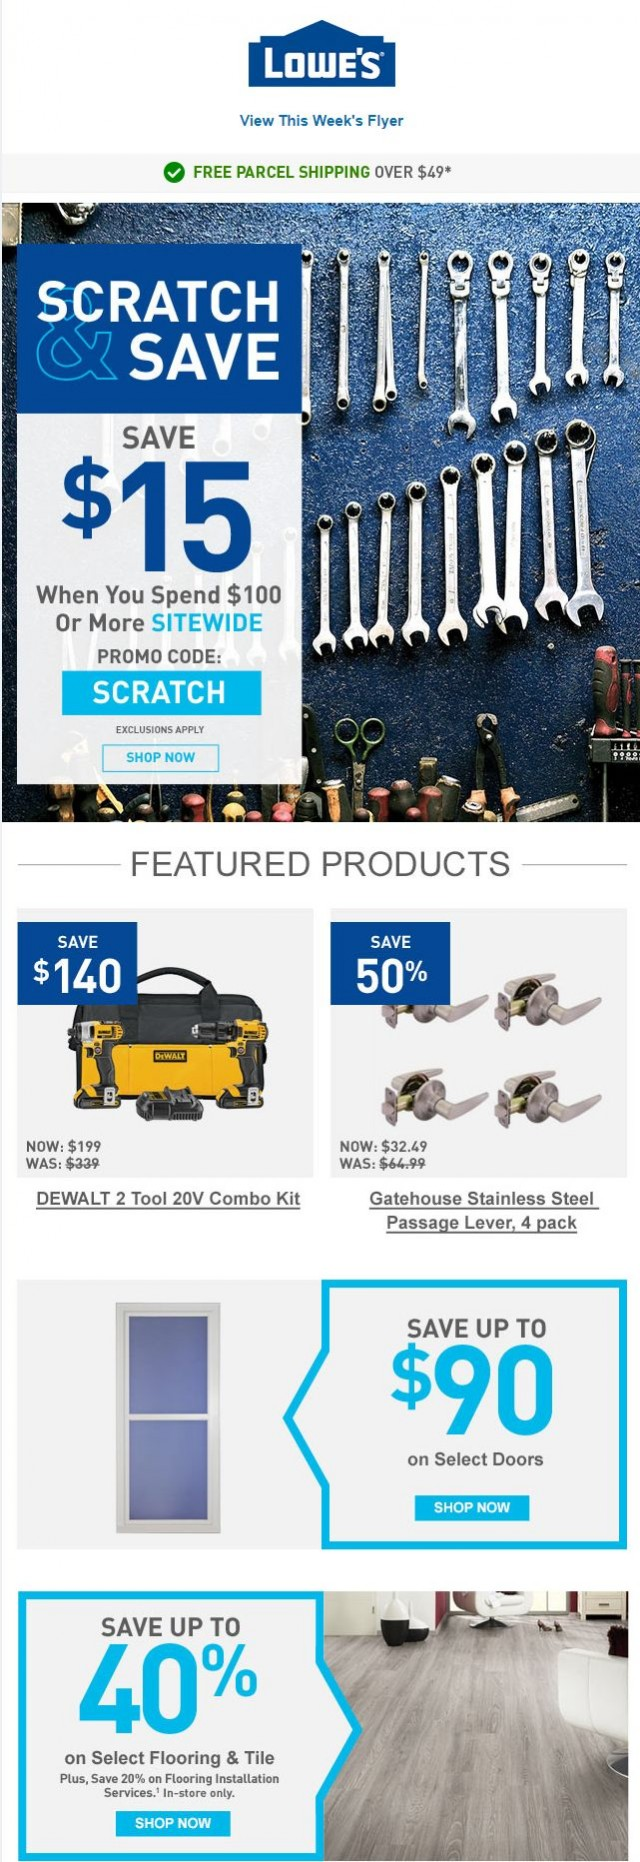 Coupon for: Lowe's - Save sitewide on tools & materials you need